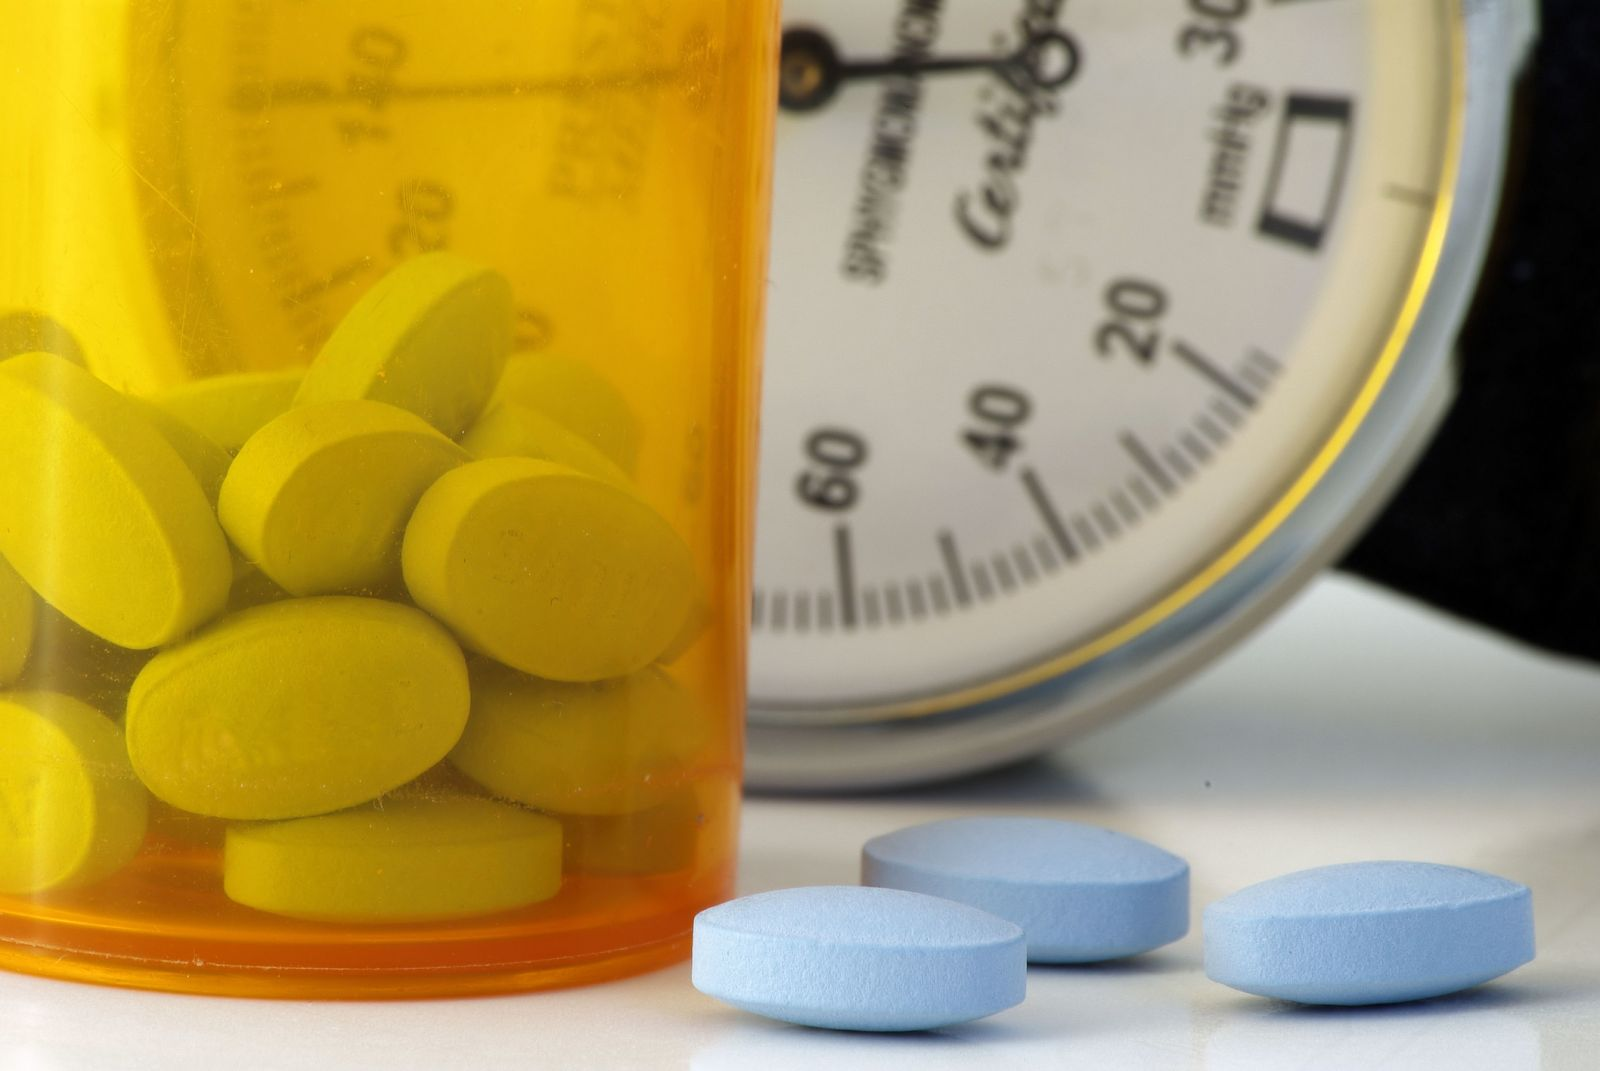 Where to buy medications for erectile dysfunction, antibiotics and other drugs